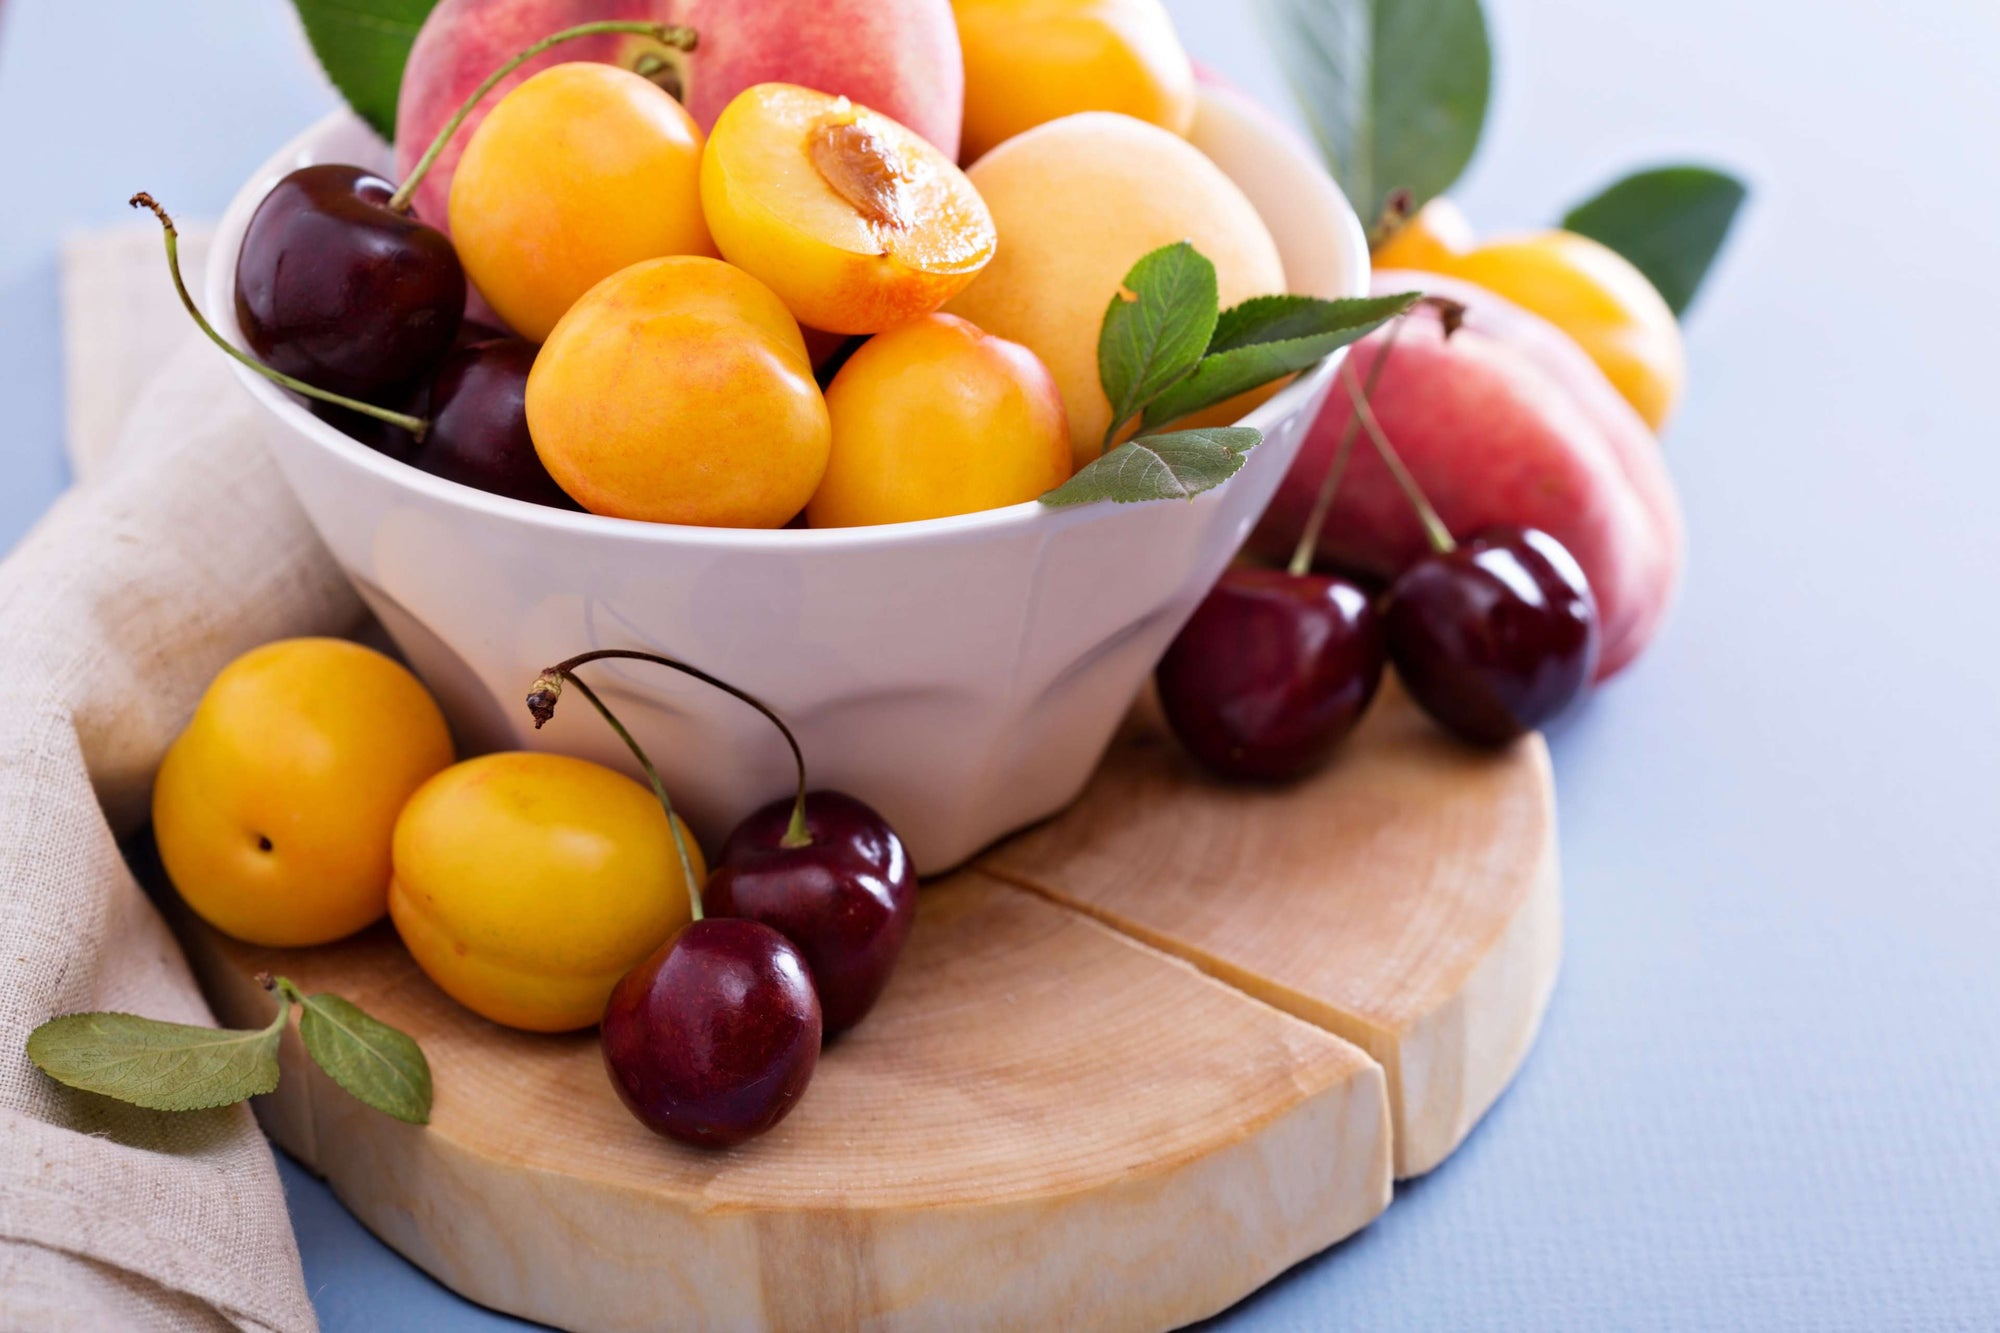 Eating Stone Fruits Reduces Health Risks